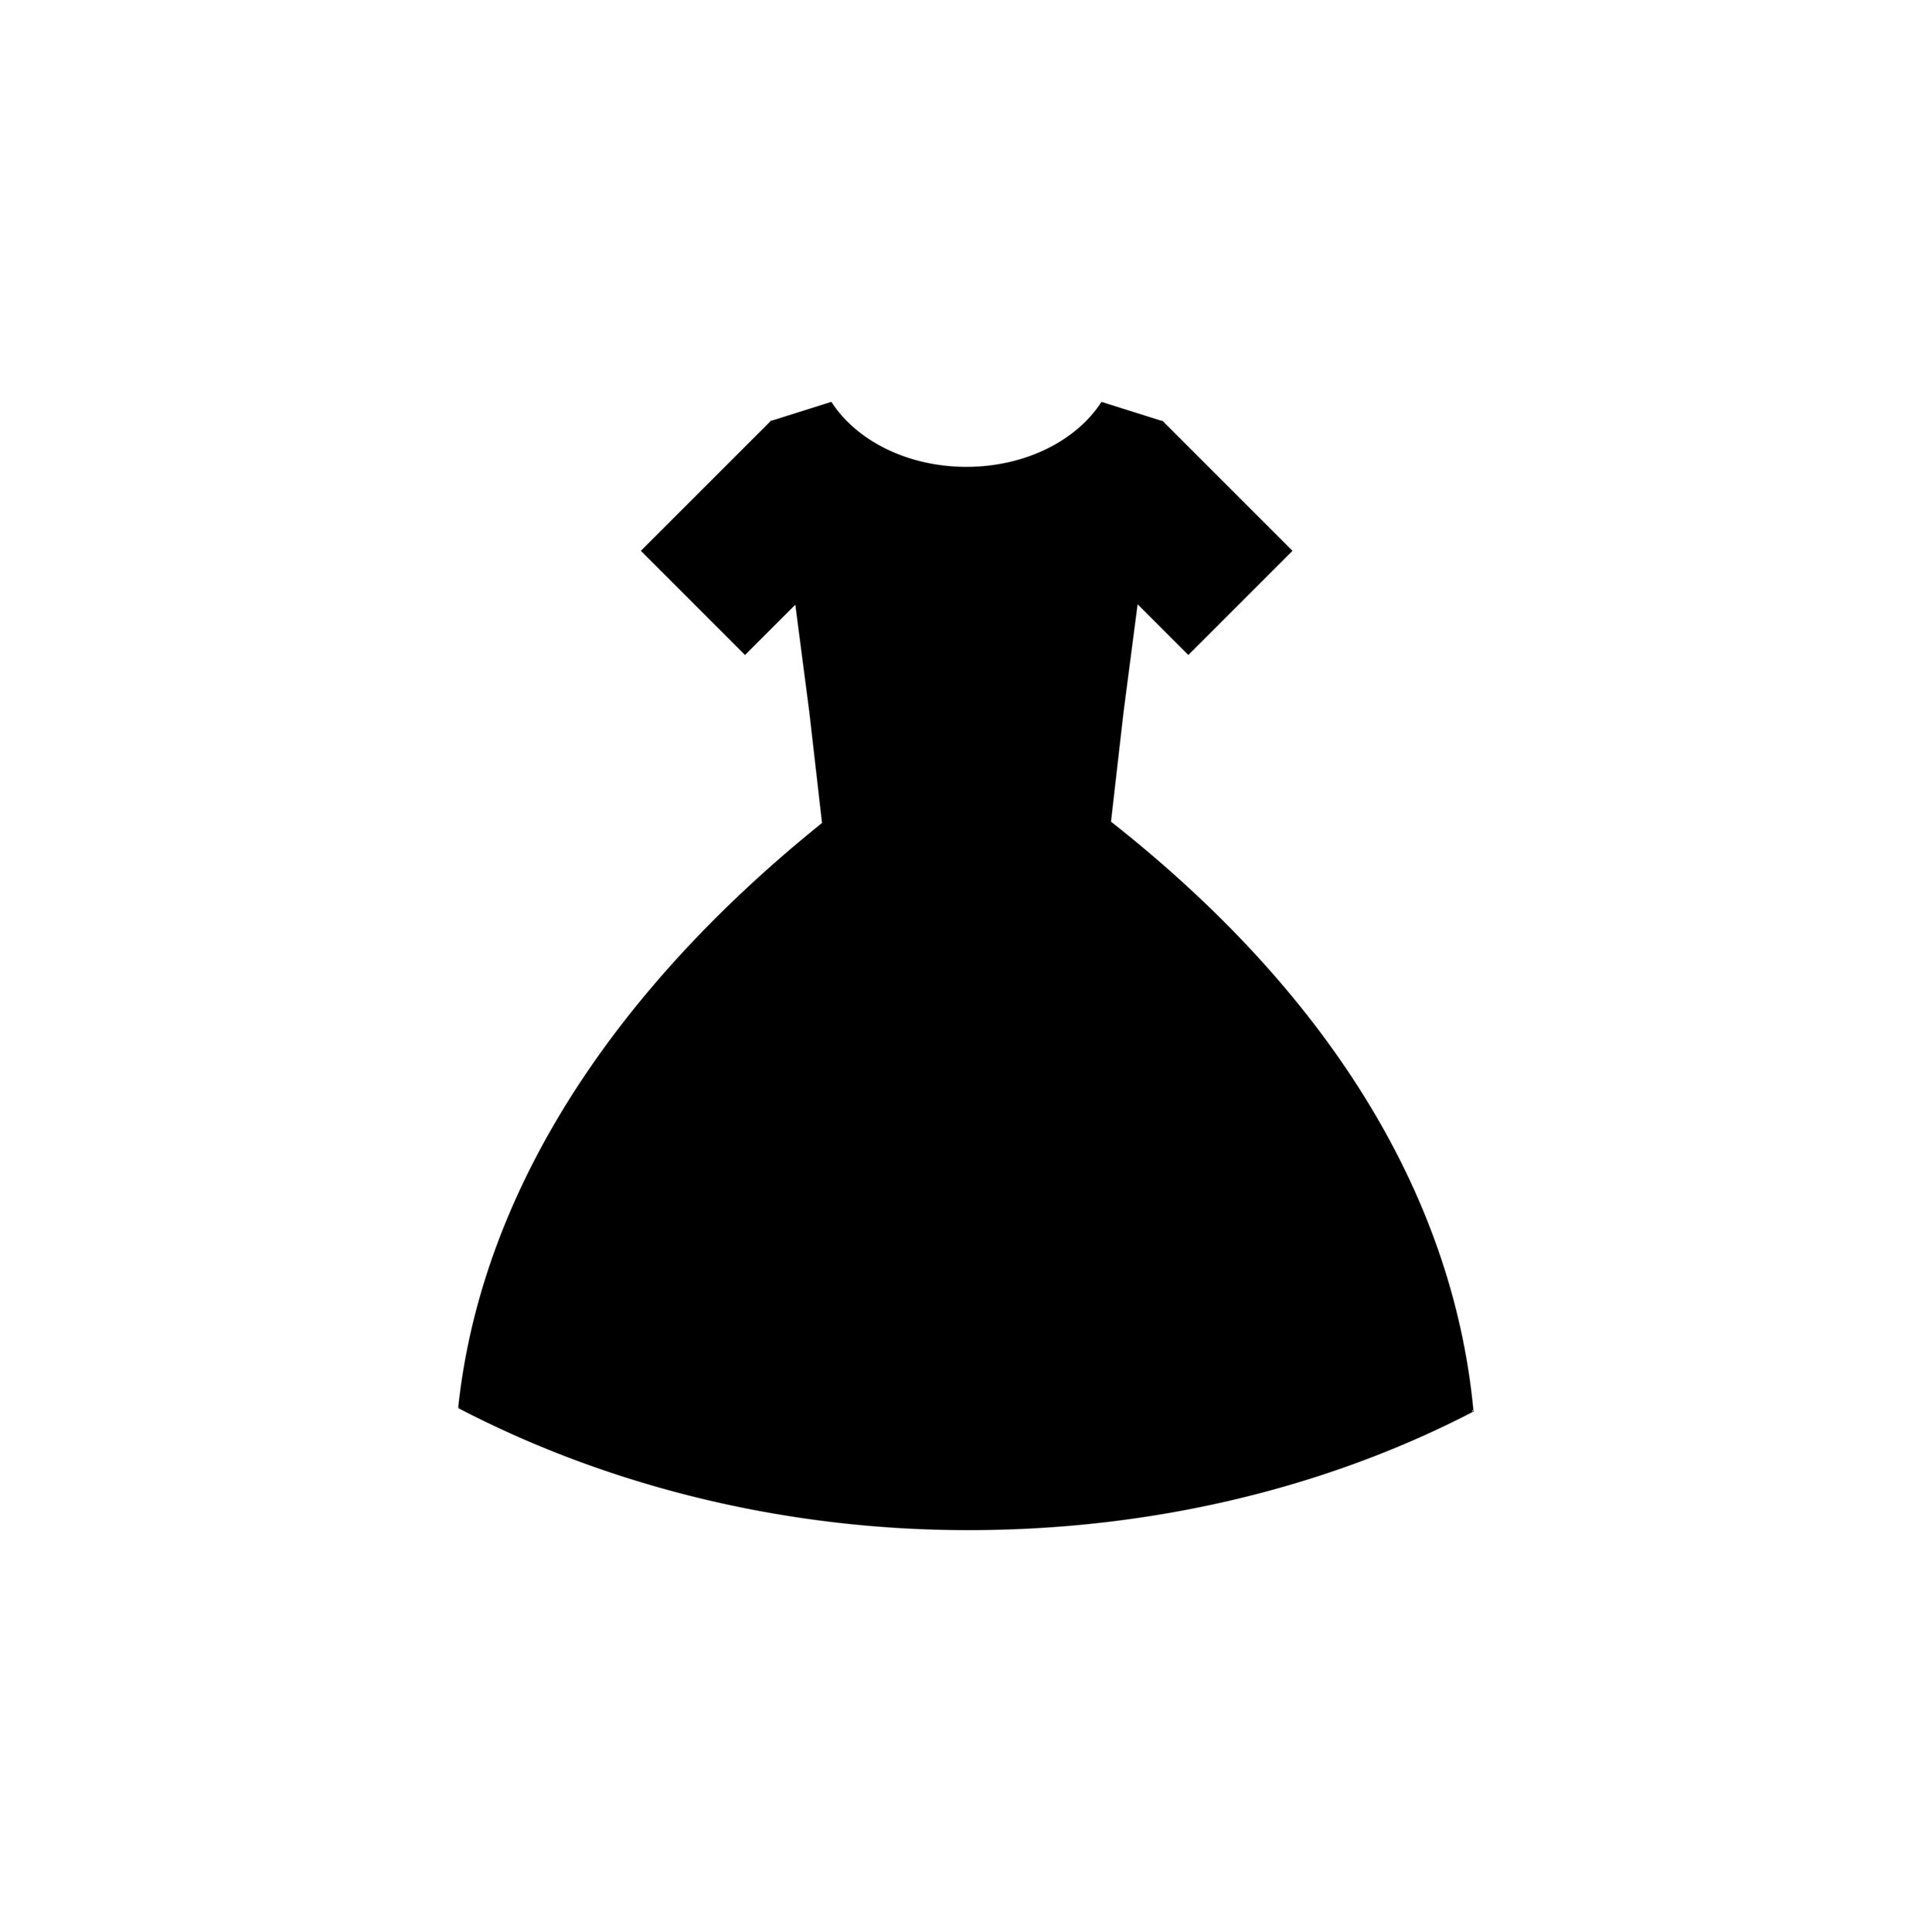 Nursing dress.png